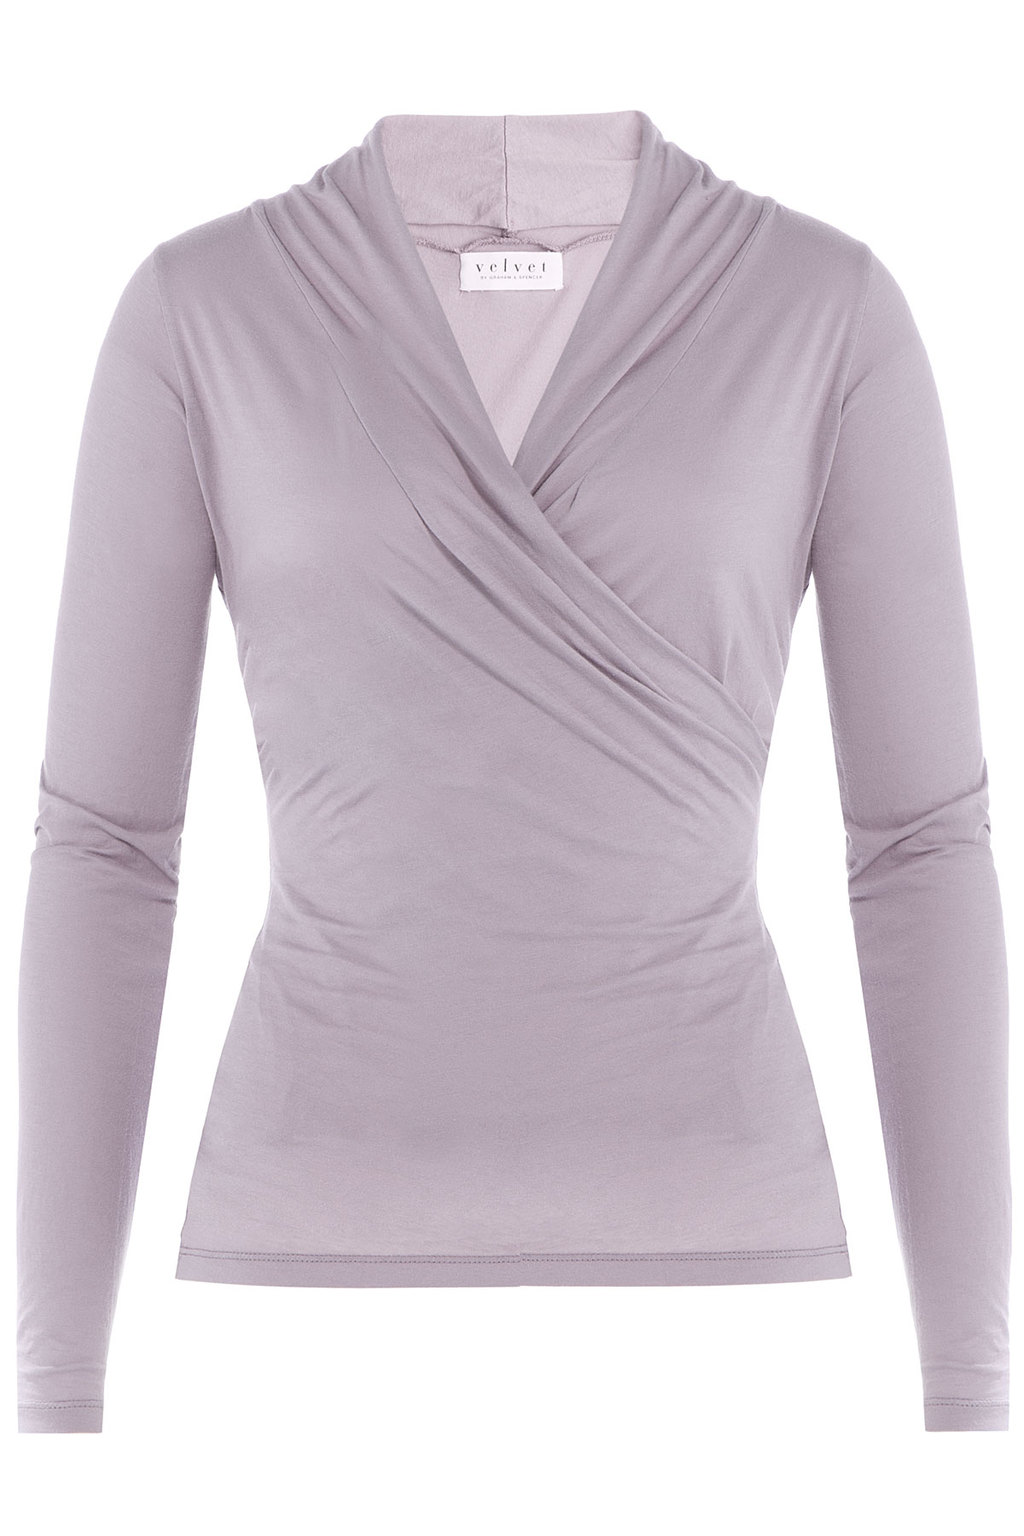 Draped Cotton Top - neckline: v-neck; pattern: plain; style: wrap/faux wrap; bust detail: subtle bust detail; predominant colour: mid grey; occasions: casual, creative work; length: standard; fibres: cotton - 100%; fit: body skimming; sleeve length: long sleeve; sleeve style: standard; texture group: jersey - clingy; pattern type: fabric; season: a/w 2015; wardrobe: basic